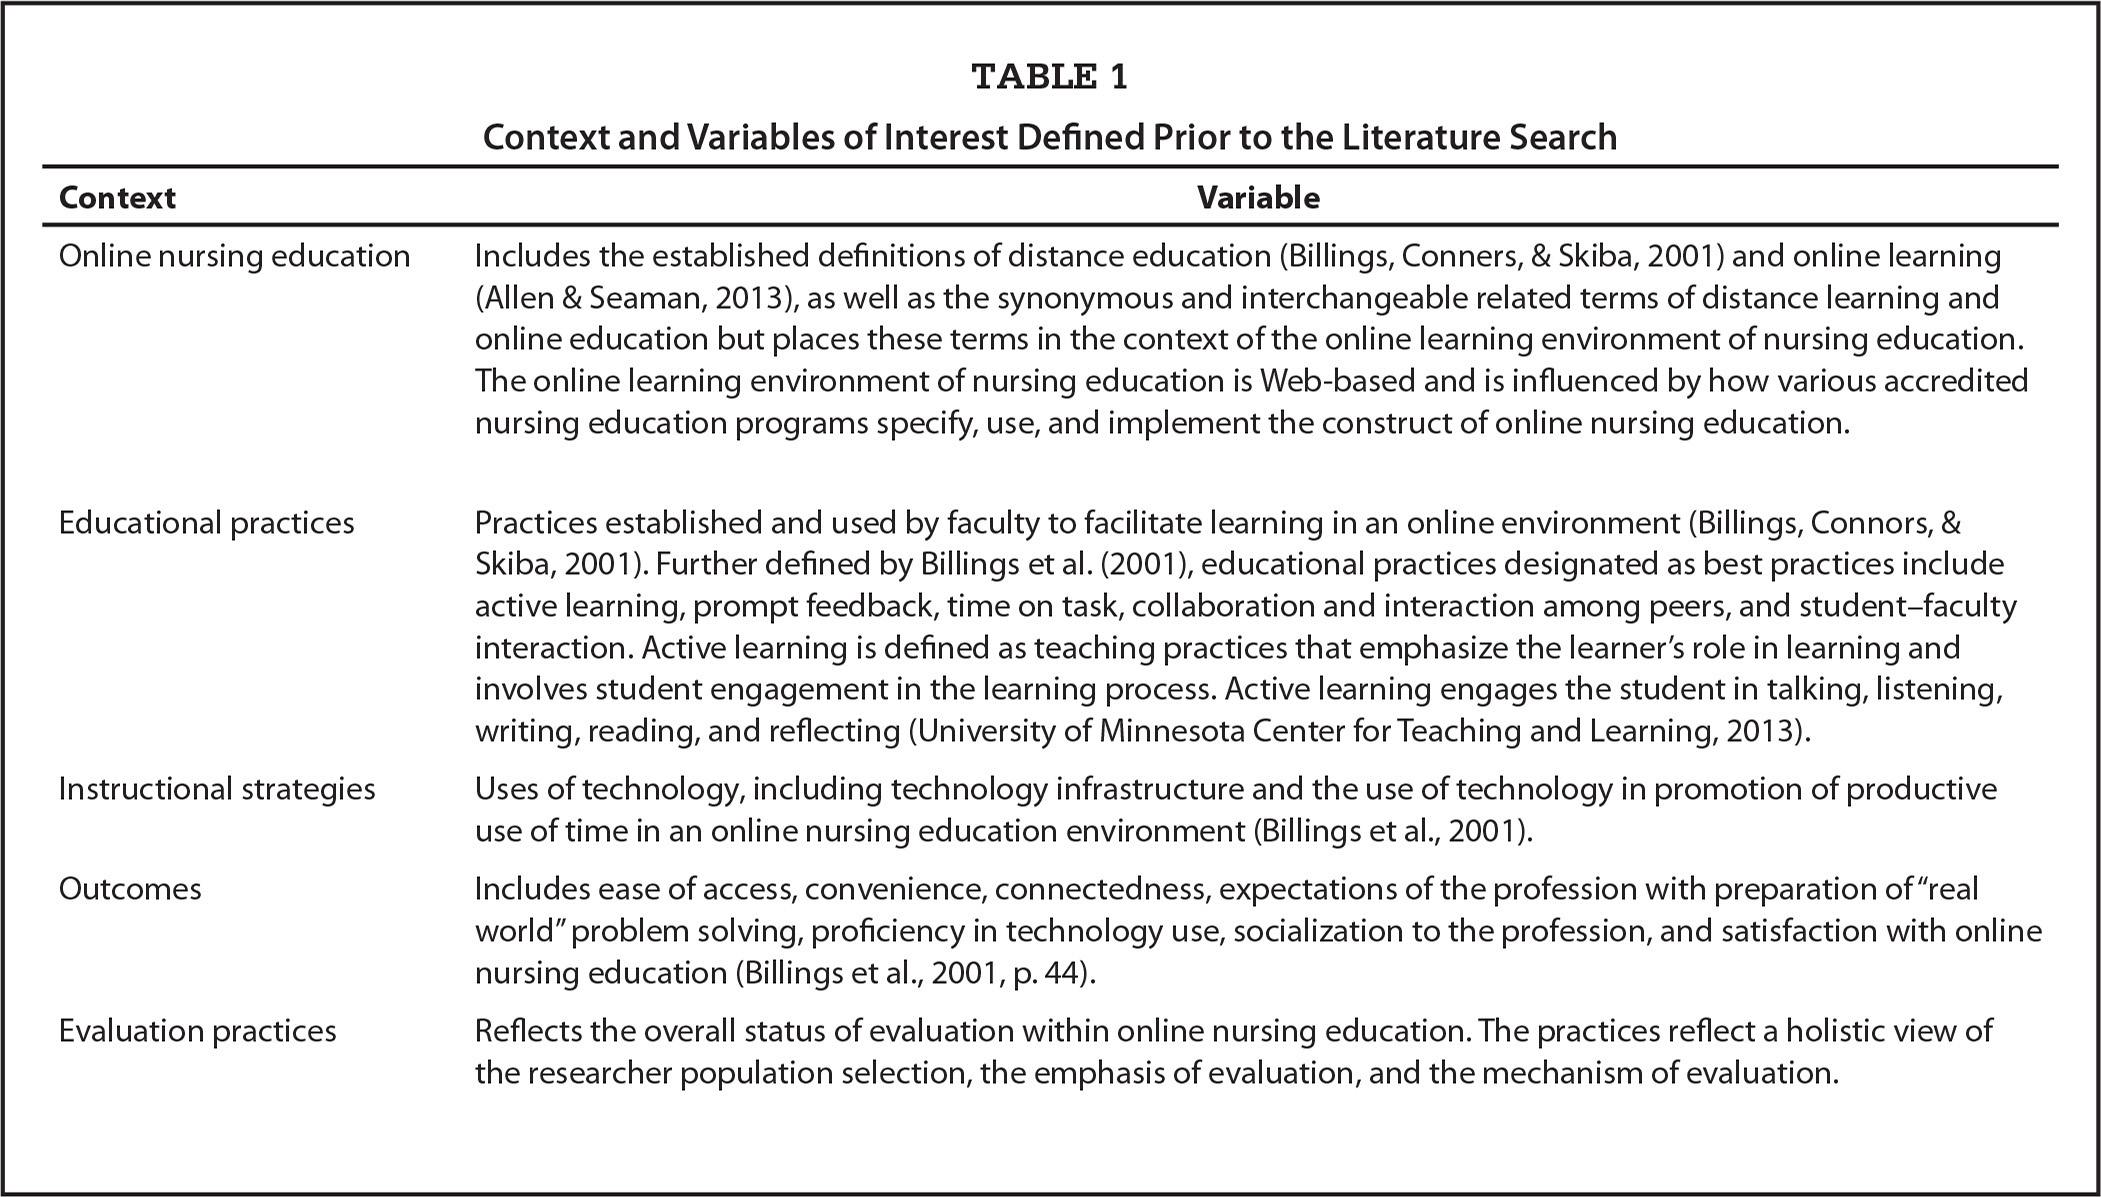 Context and Variables of Interest Defined Prior to the Literature Search